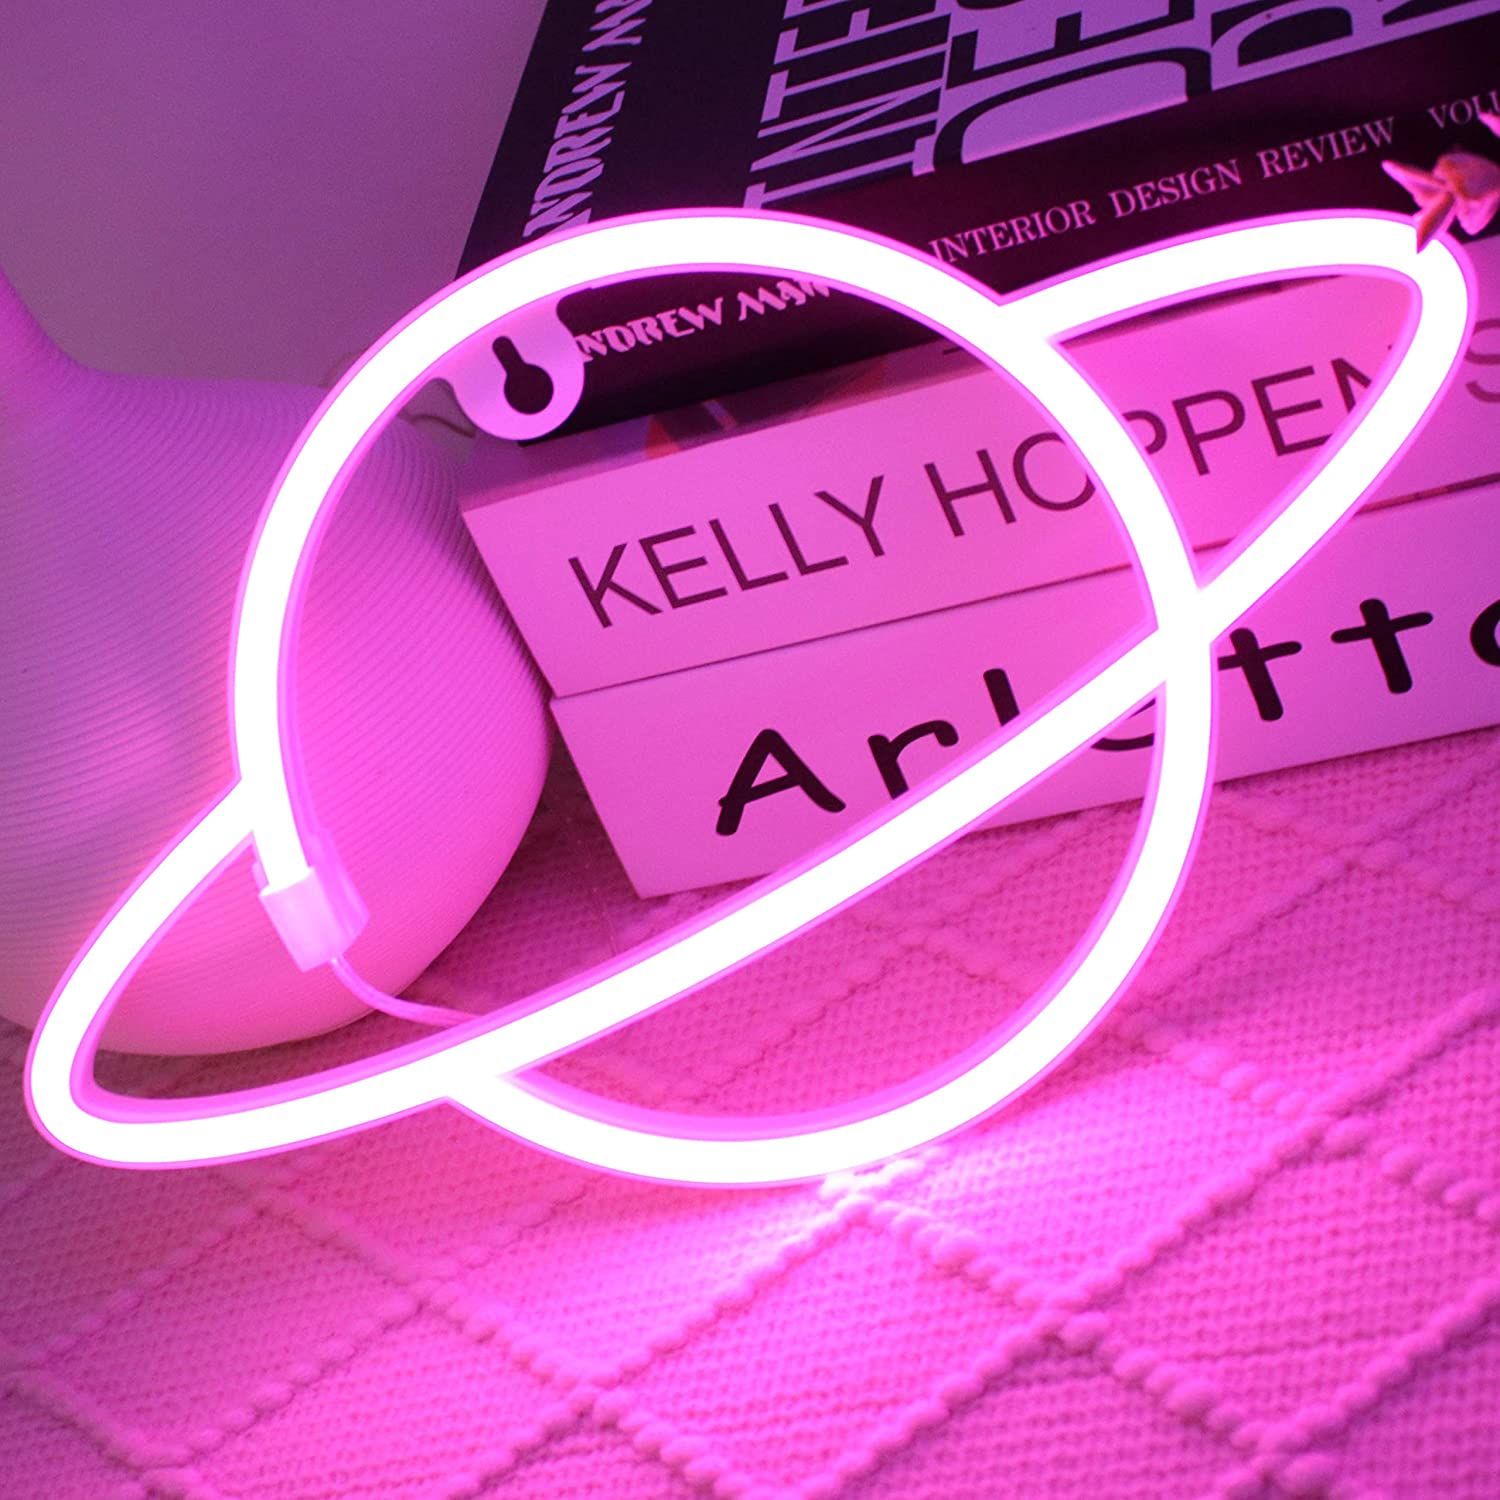 LED Planet Neon Signs Light Pink Led Wall Decor, Battery or USB Operated Planet Lamp Planet Neon Signs Light up for Home,Kids Room,Bar,Festive Party,Christmas,Wedding(Pink)